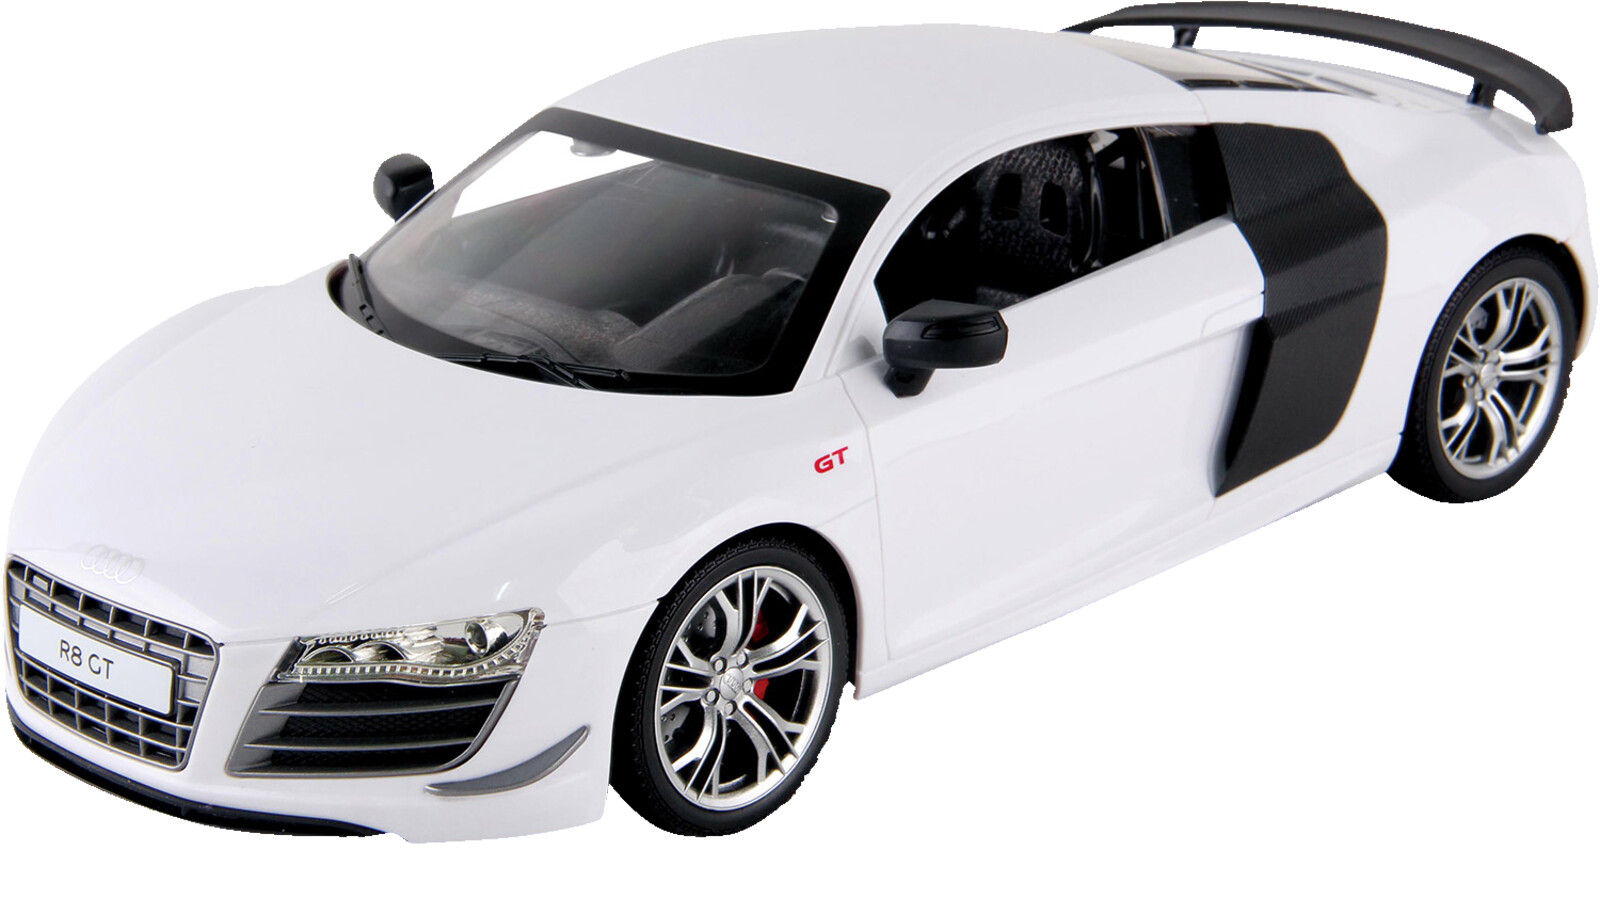 siva audi r8 gt 1 14 2 4 ghz wei rtr ferngesteuertes auto. Black Bedroom Furniture Sets. Home Design Ideas